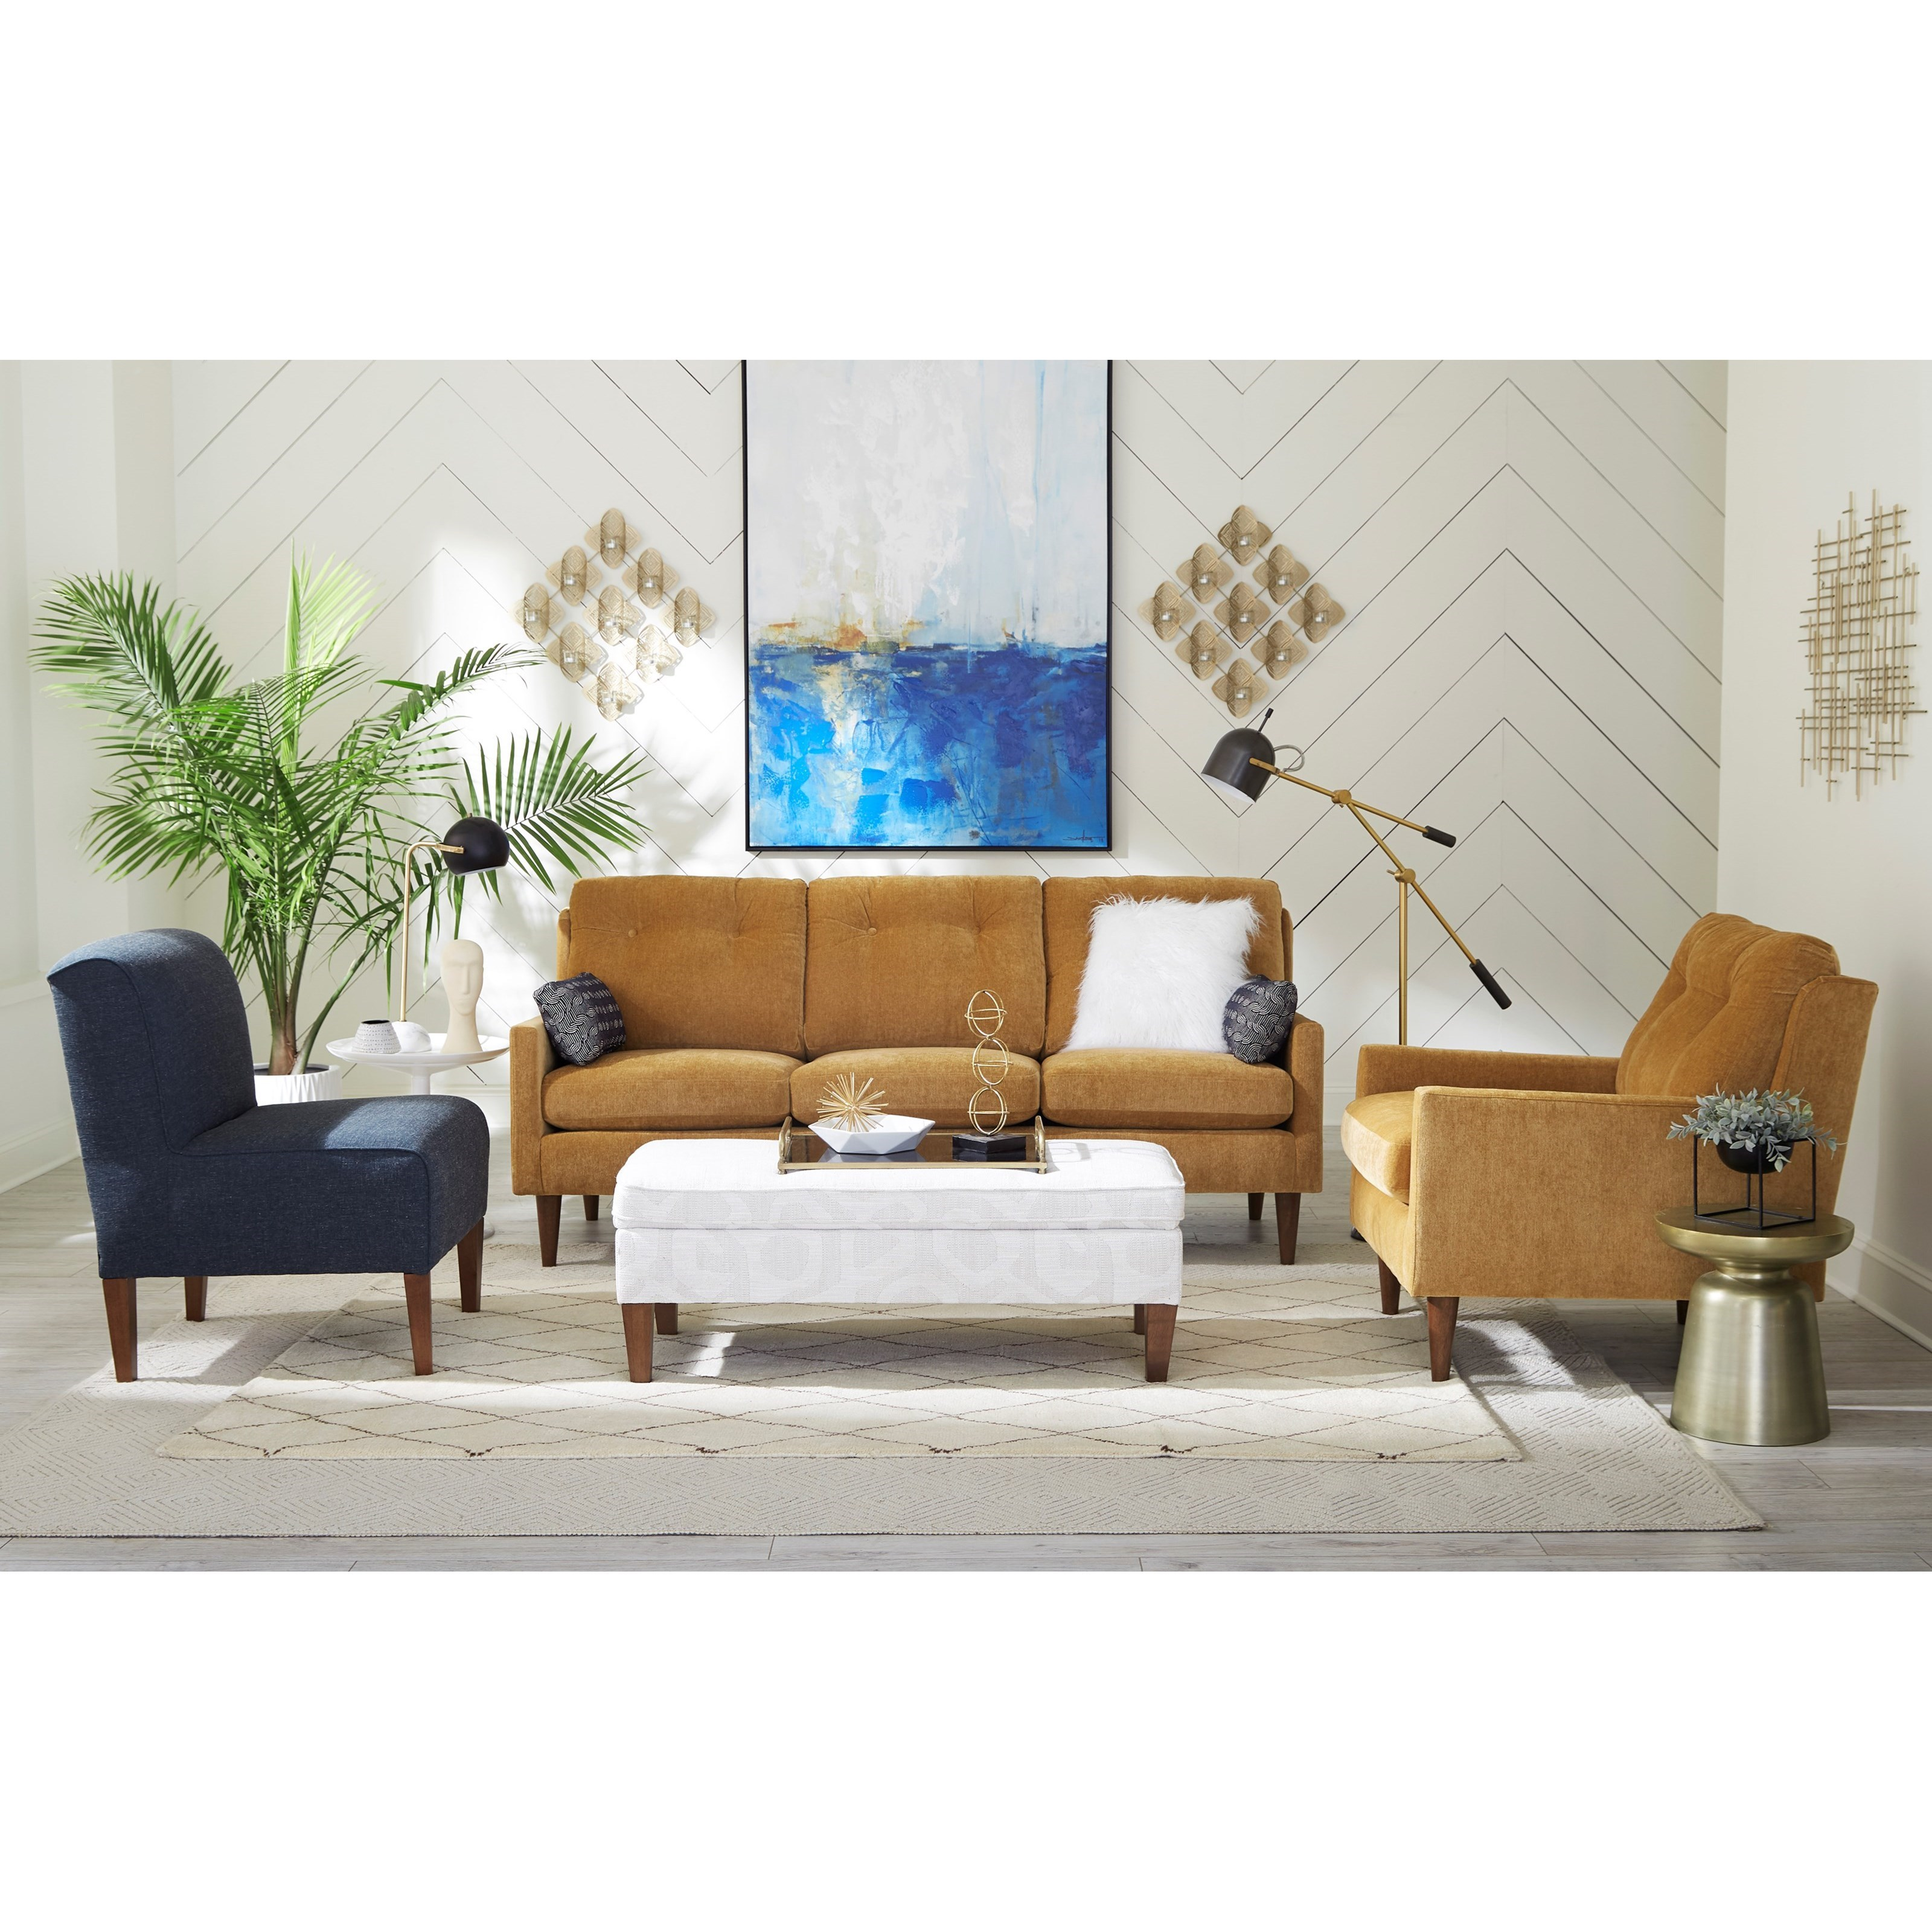 Trevin Living Room Group by Best Home Furnishings at Baer's Furniture